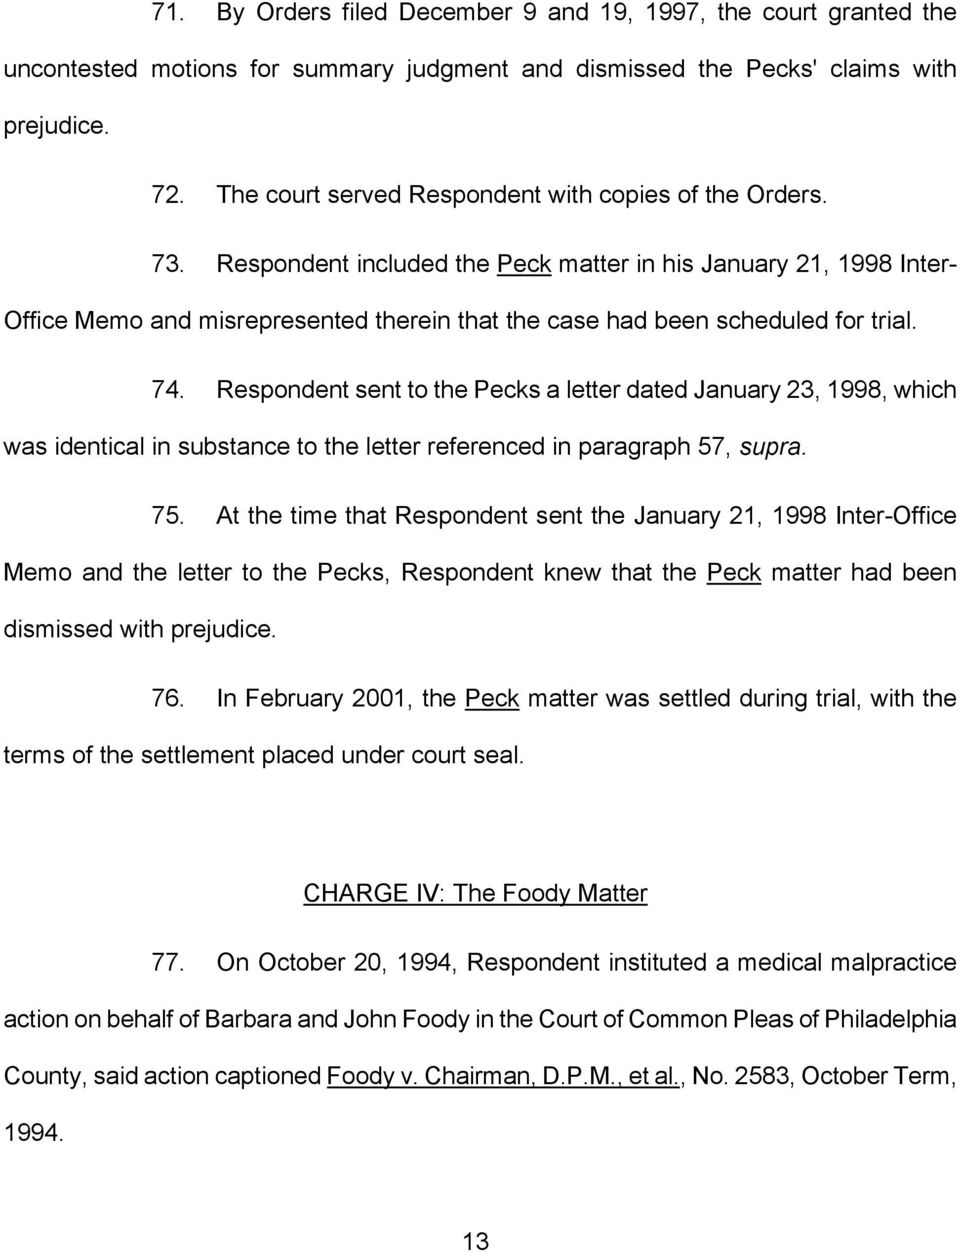 Respondent included the Peck matter in his January 21, 1998 Inter- Office Memo and misrepresented therein that the case had been scheduled for trial. 74.